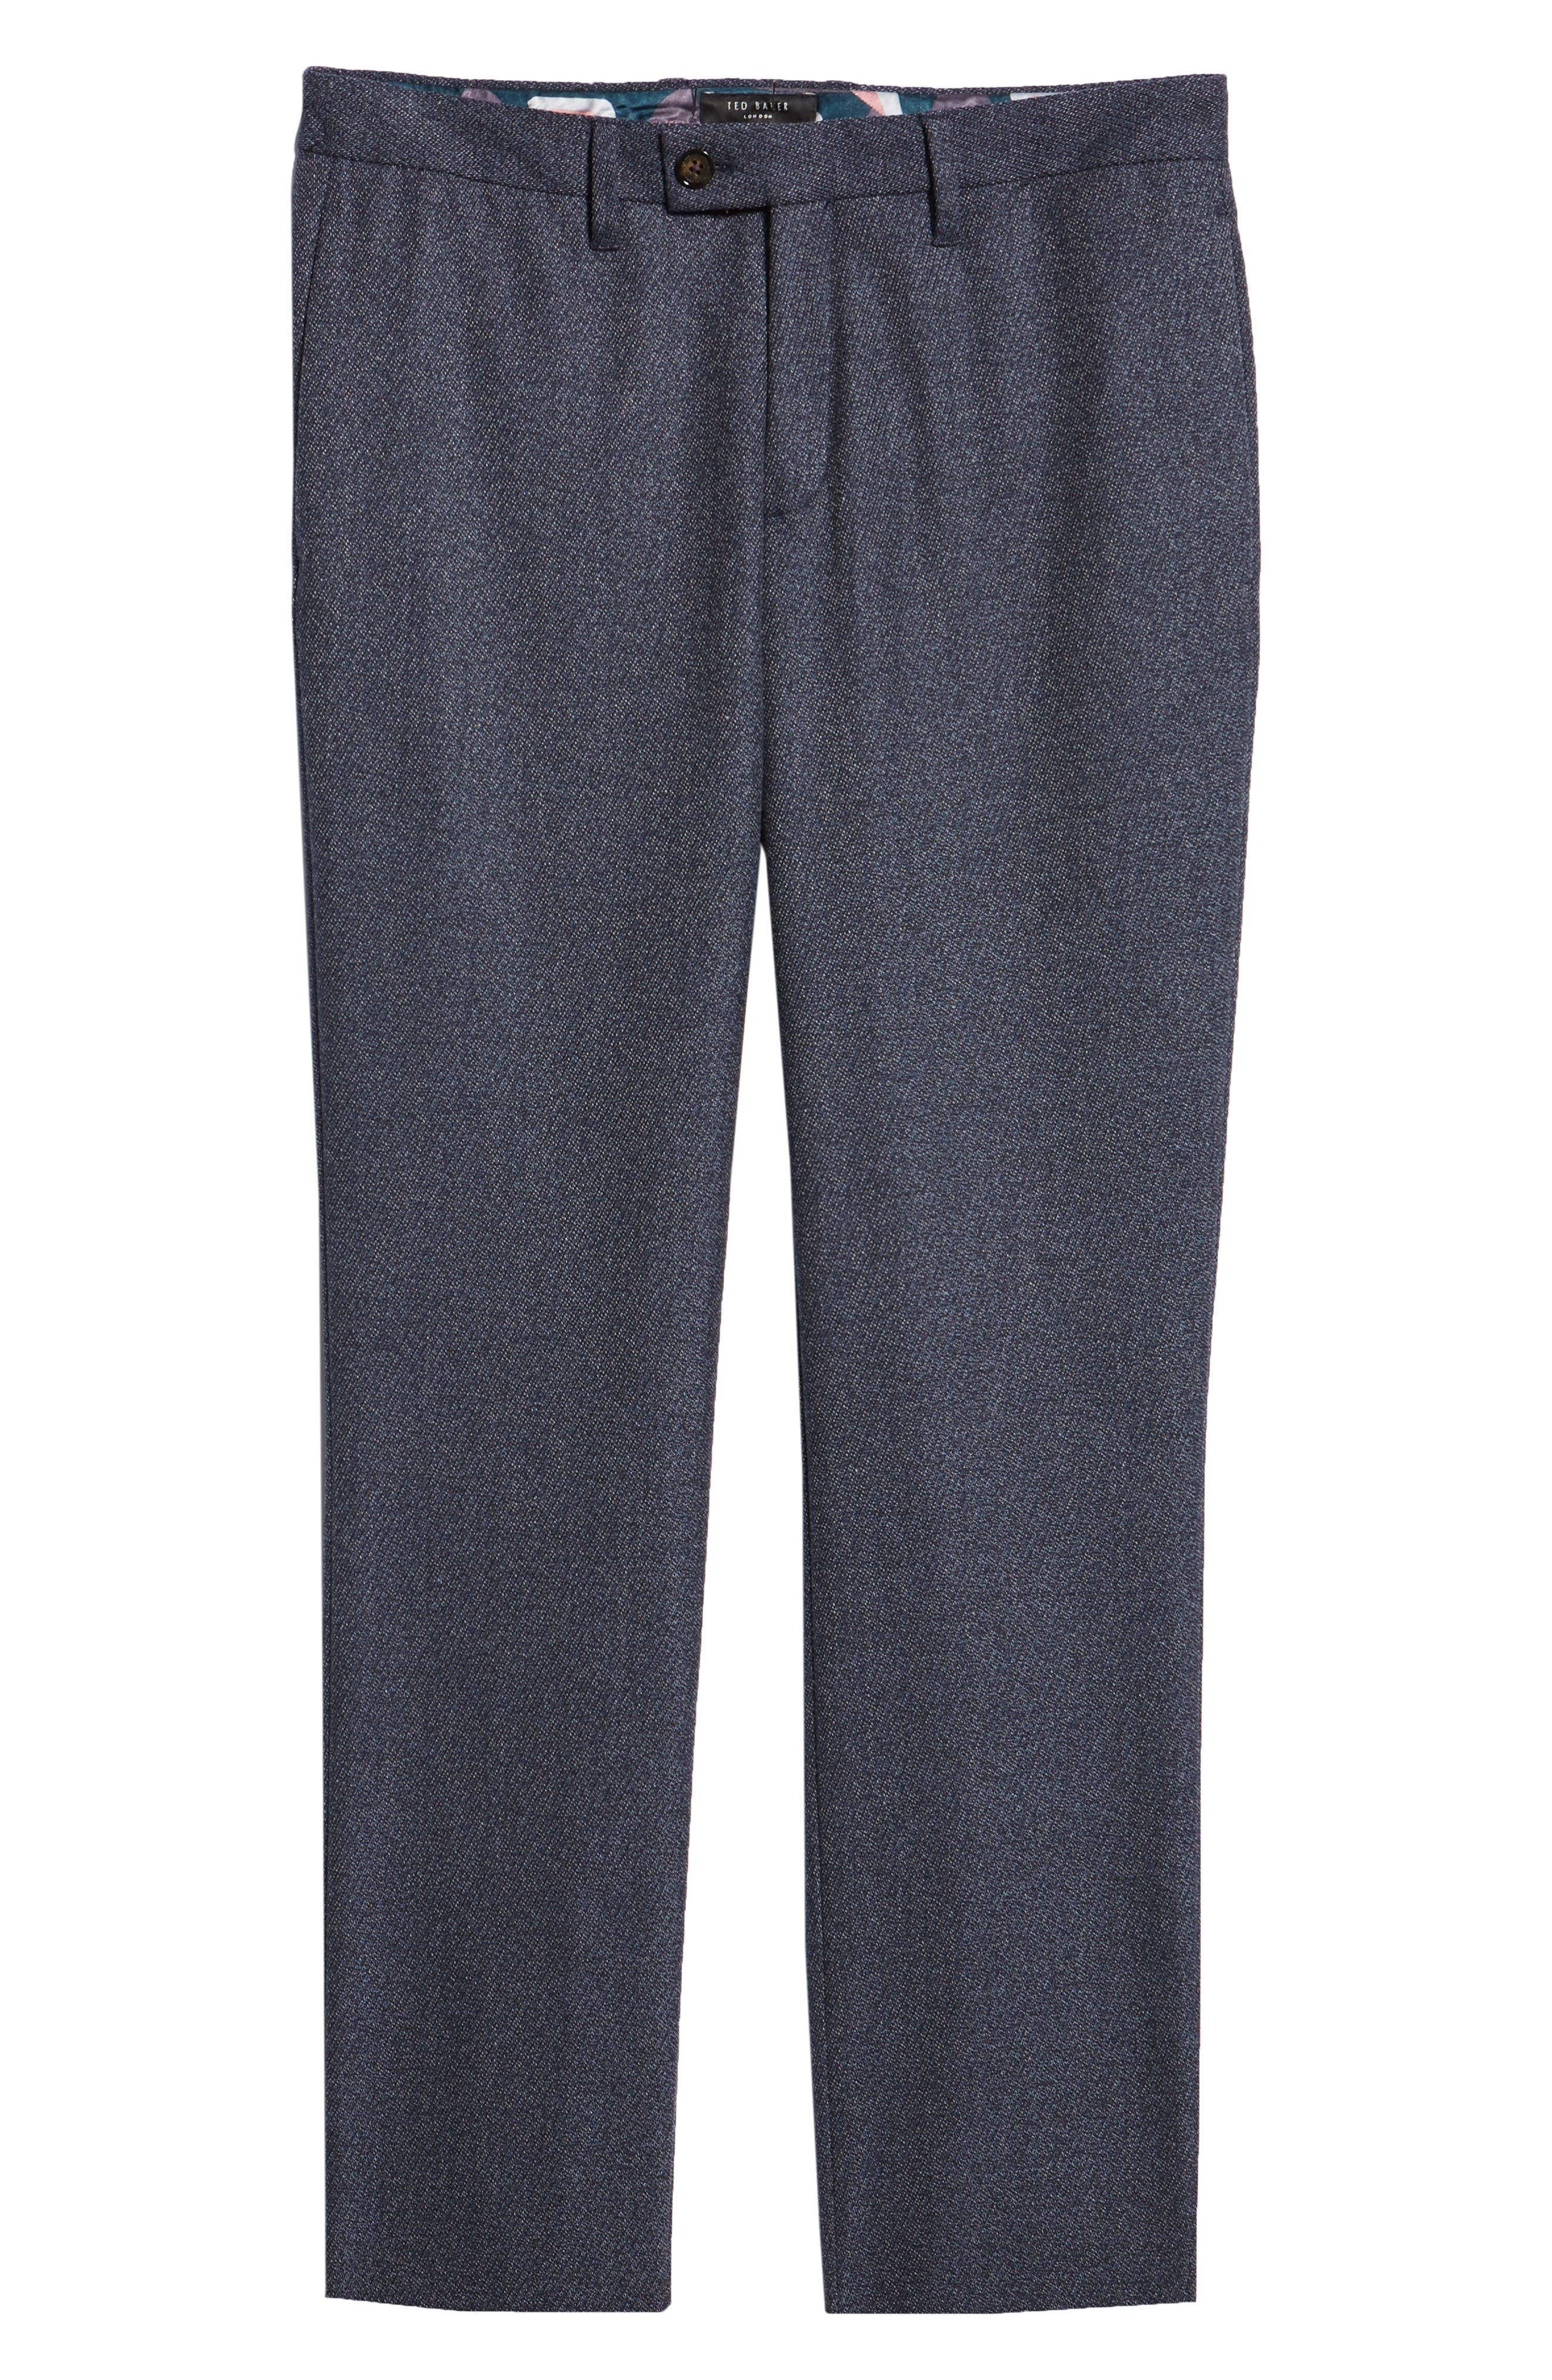 TED BAKER LONDON,                             Buftro Flat Front Slim Twill Trousers,                             Alternate thumbnail 6, color,                             BLUE